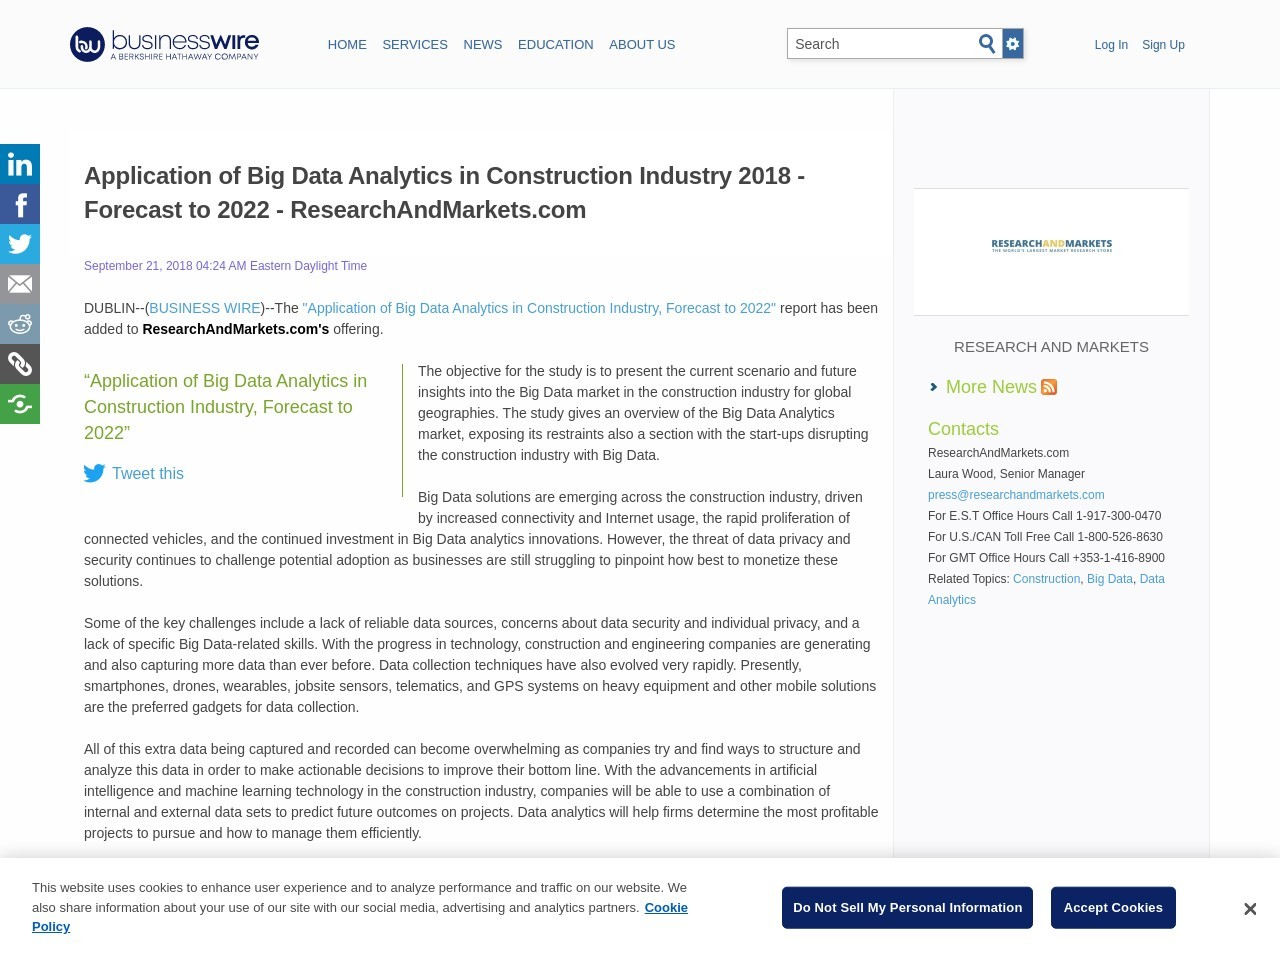 Application of Big Data Analytics in Construction Industry 2018 – Forecast to 2022 – ResearchAndMarkets.com